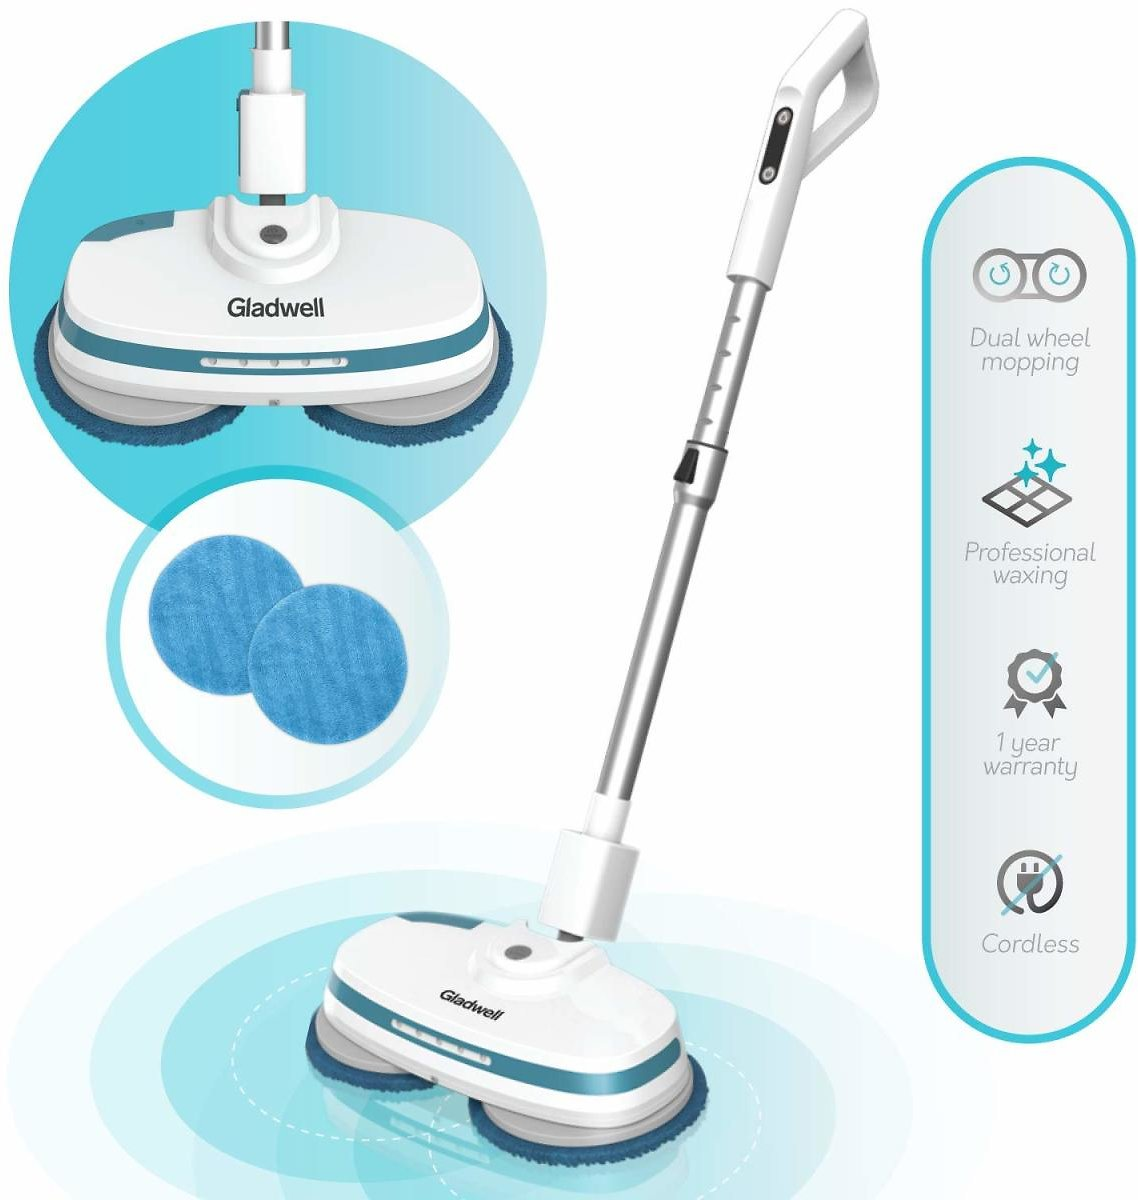 Gladwell Cordless Electric Mop - 3 in 1 Spinner, Scrubber, Waxer Quiet, Powerful Cleaner Spin Scrubber & Buffer | Amazon